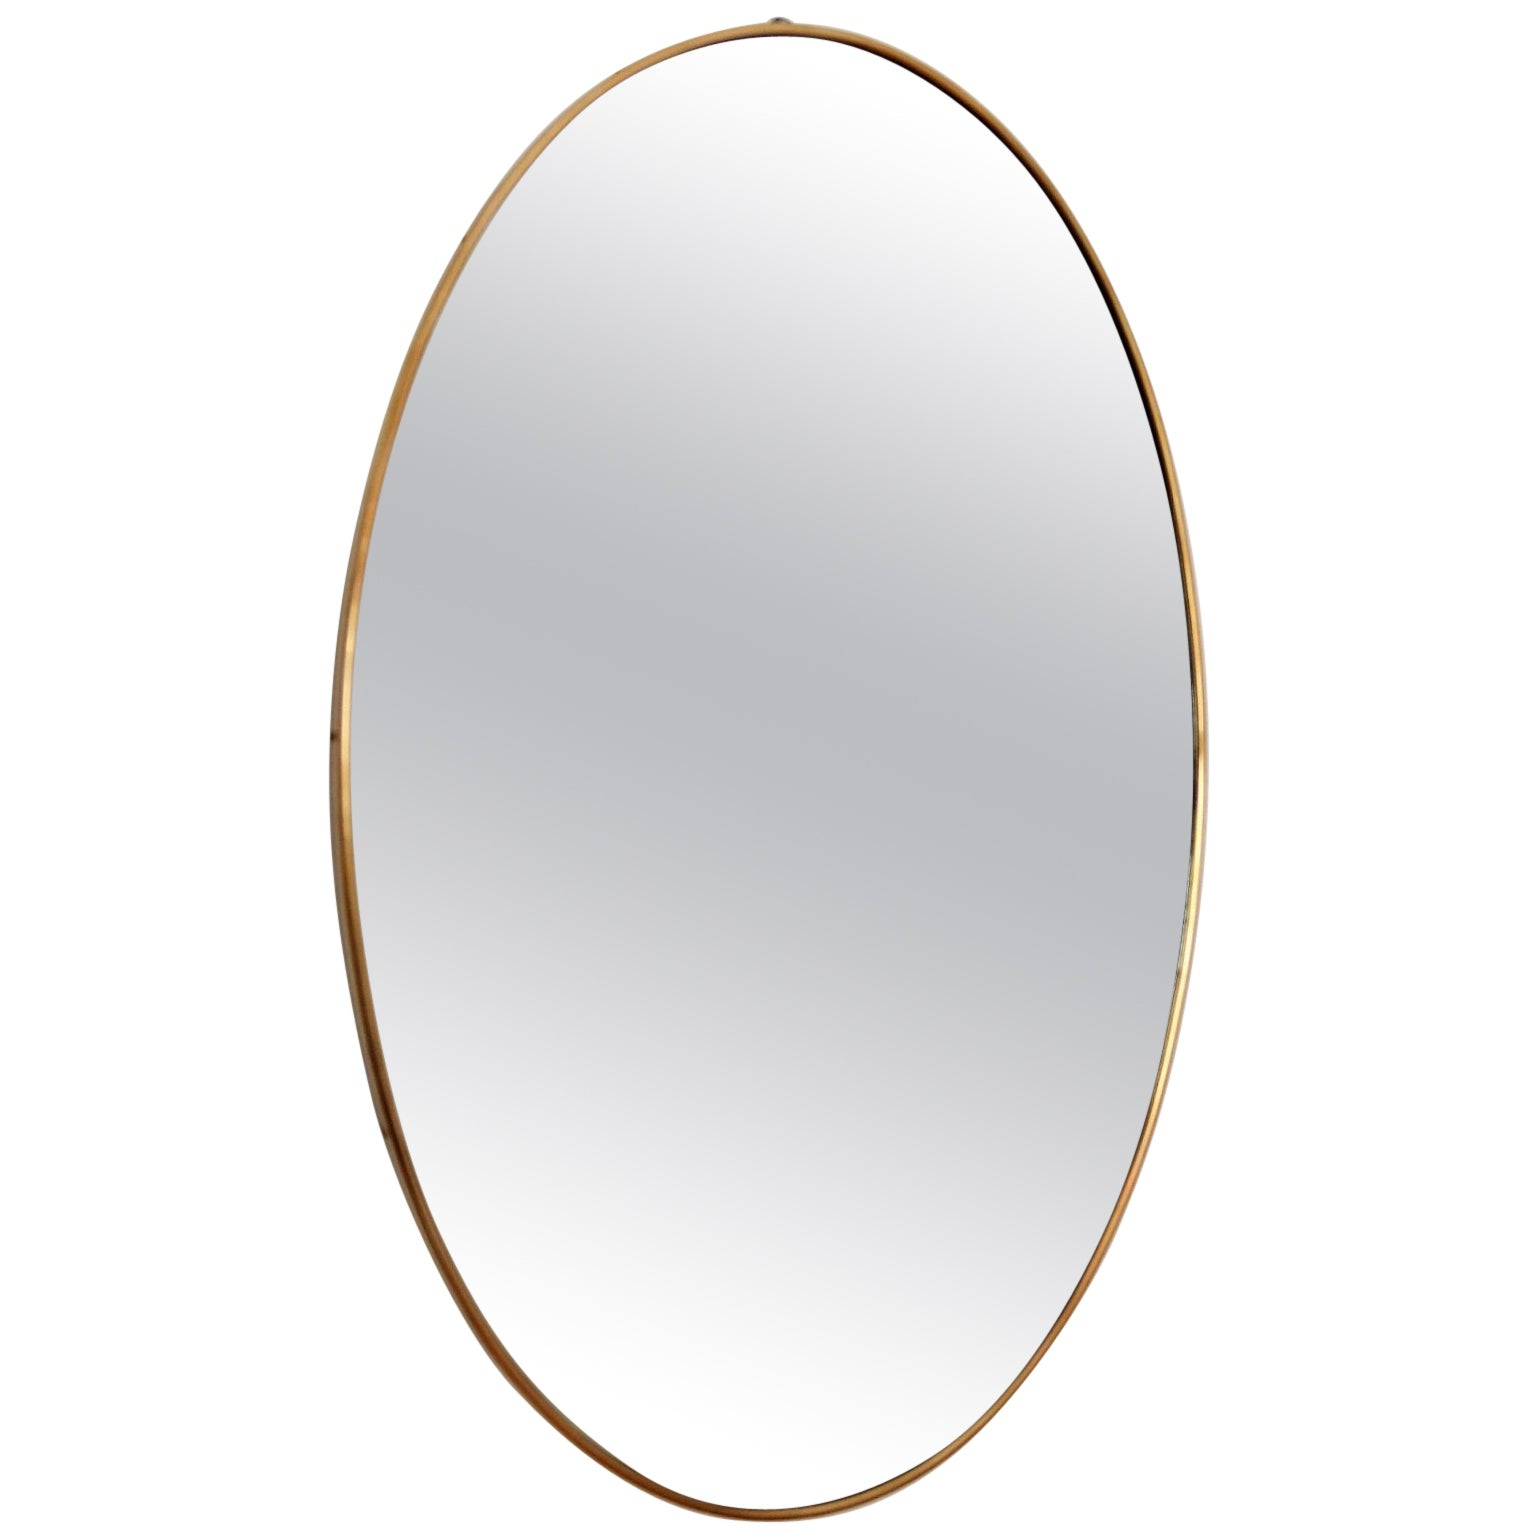 Italian Midcentury Oval Wall Mirror with Brass Frame, 1950s